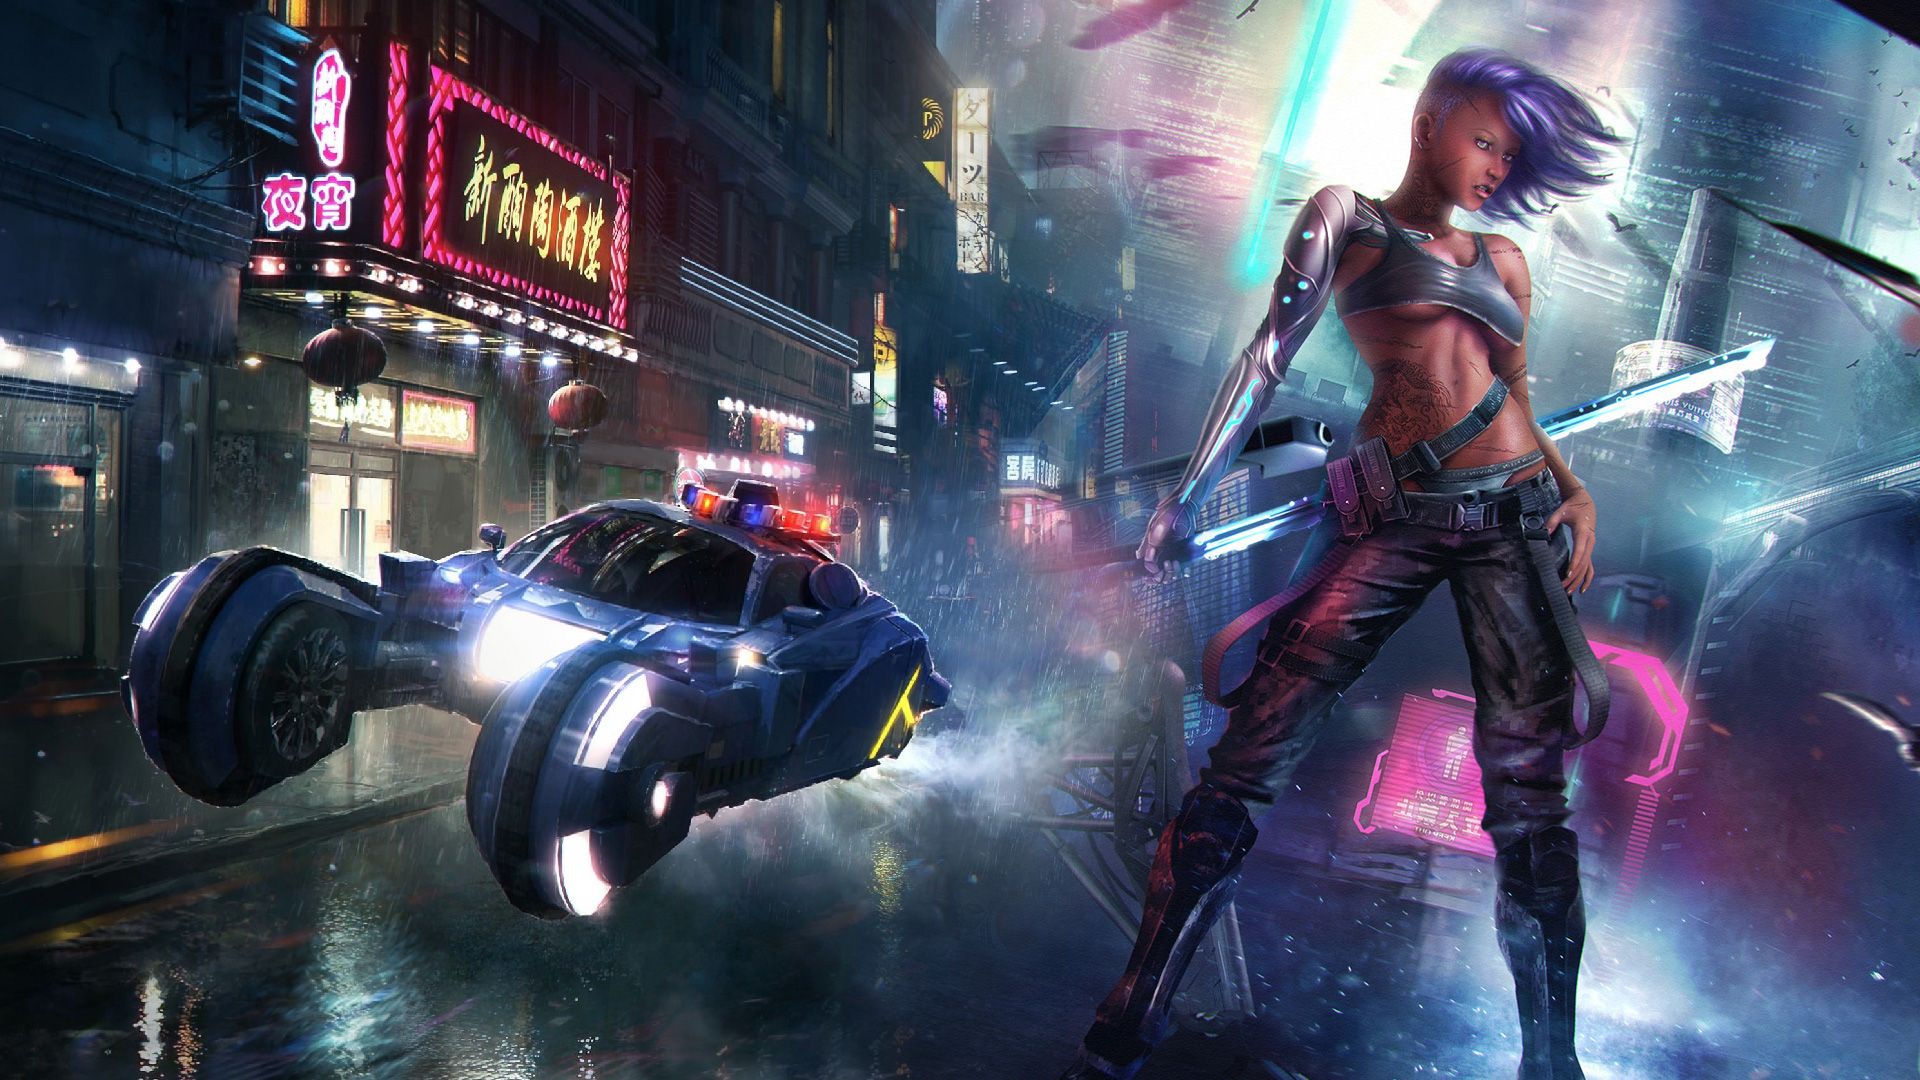 Star Wars Girl Wallpaper Cyberpunk 2077 May Or May Not Be Shown At This Year S E3